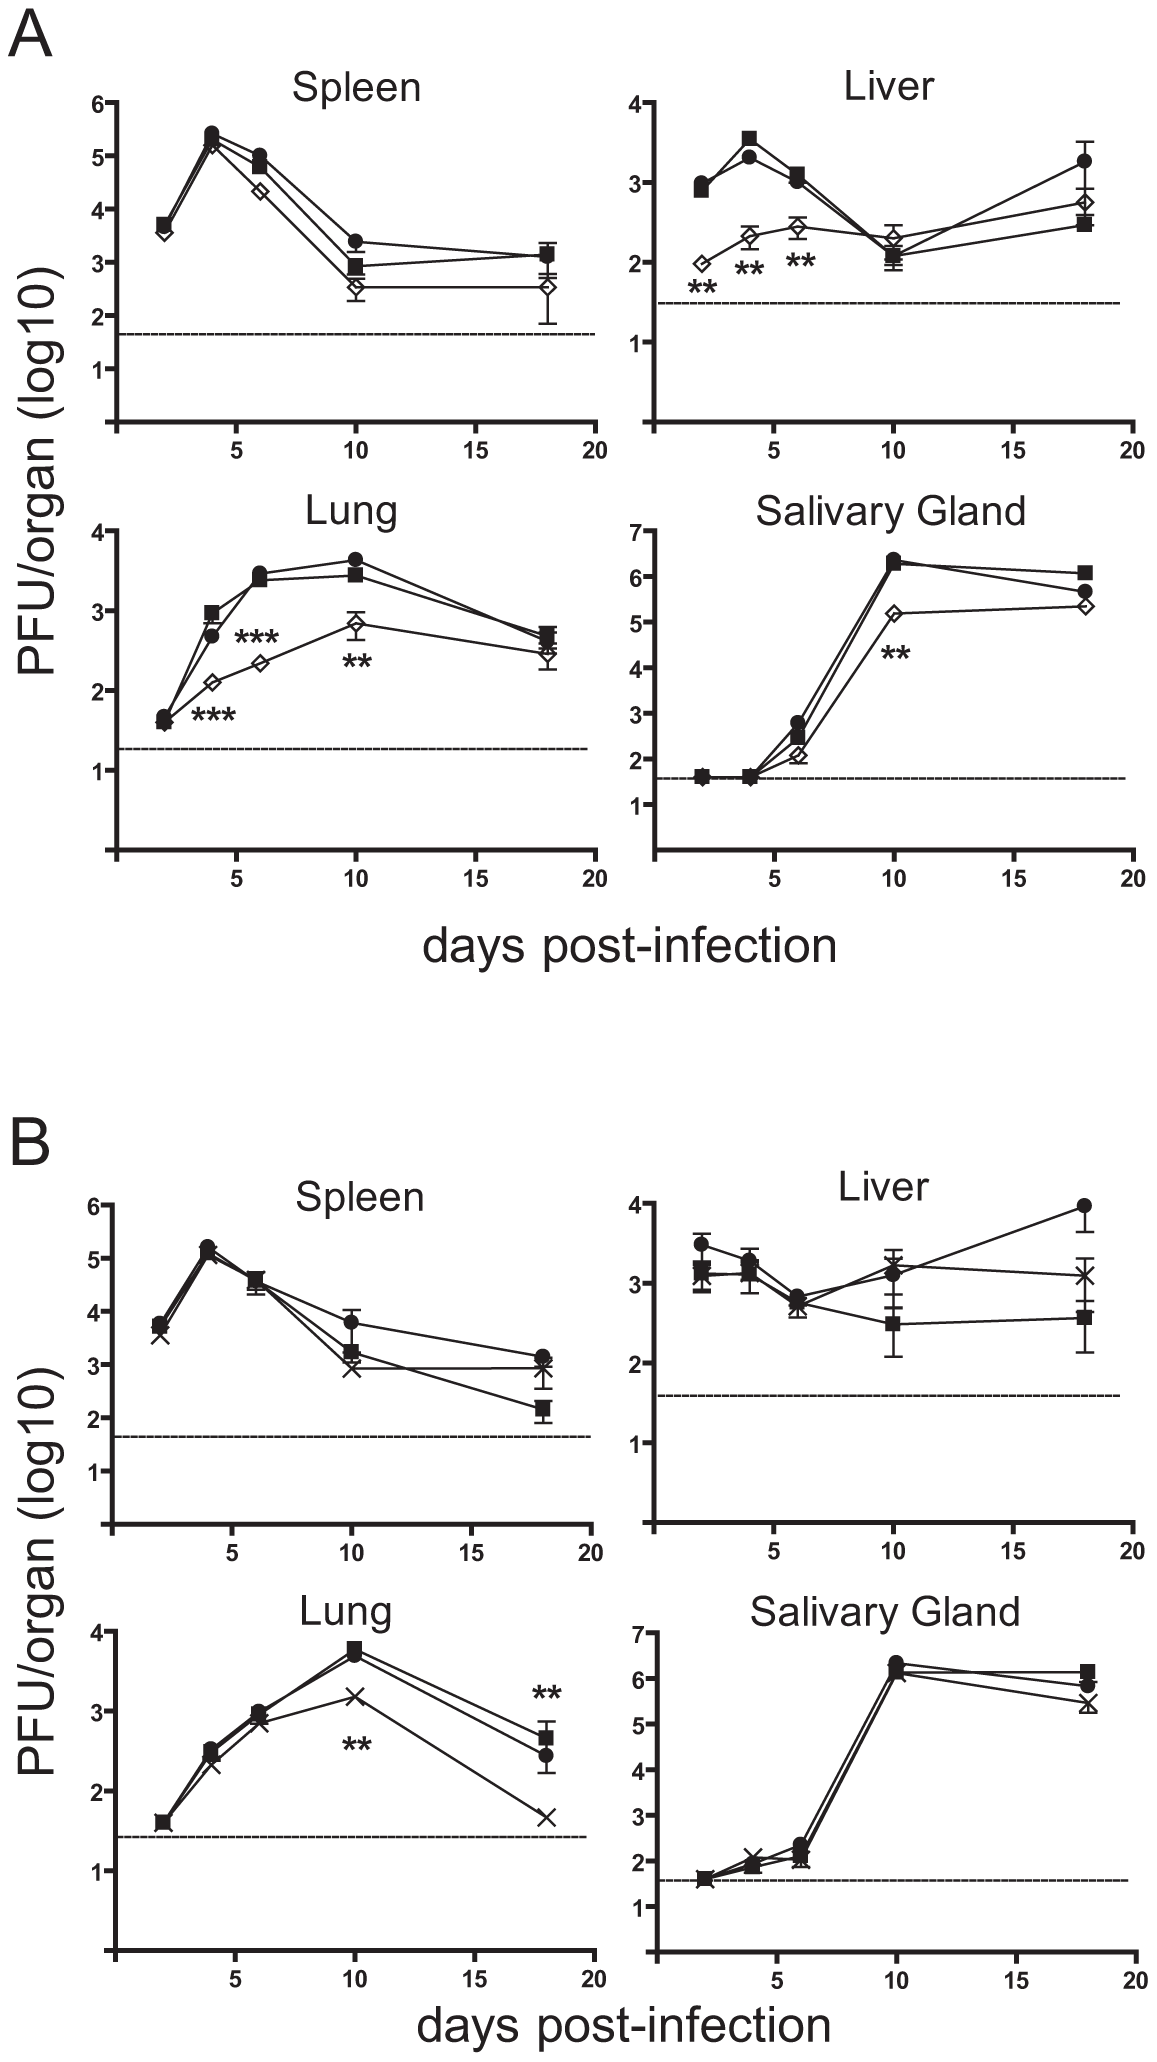 Loss of m41.1 or m41 impairs viral replication <i>in vivo</i>.